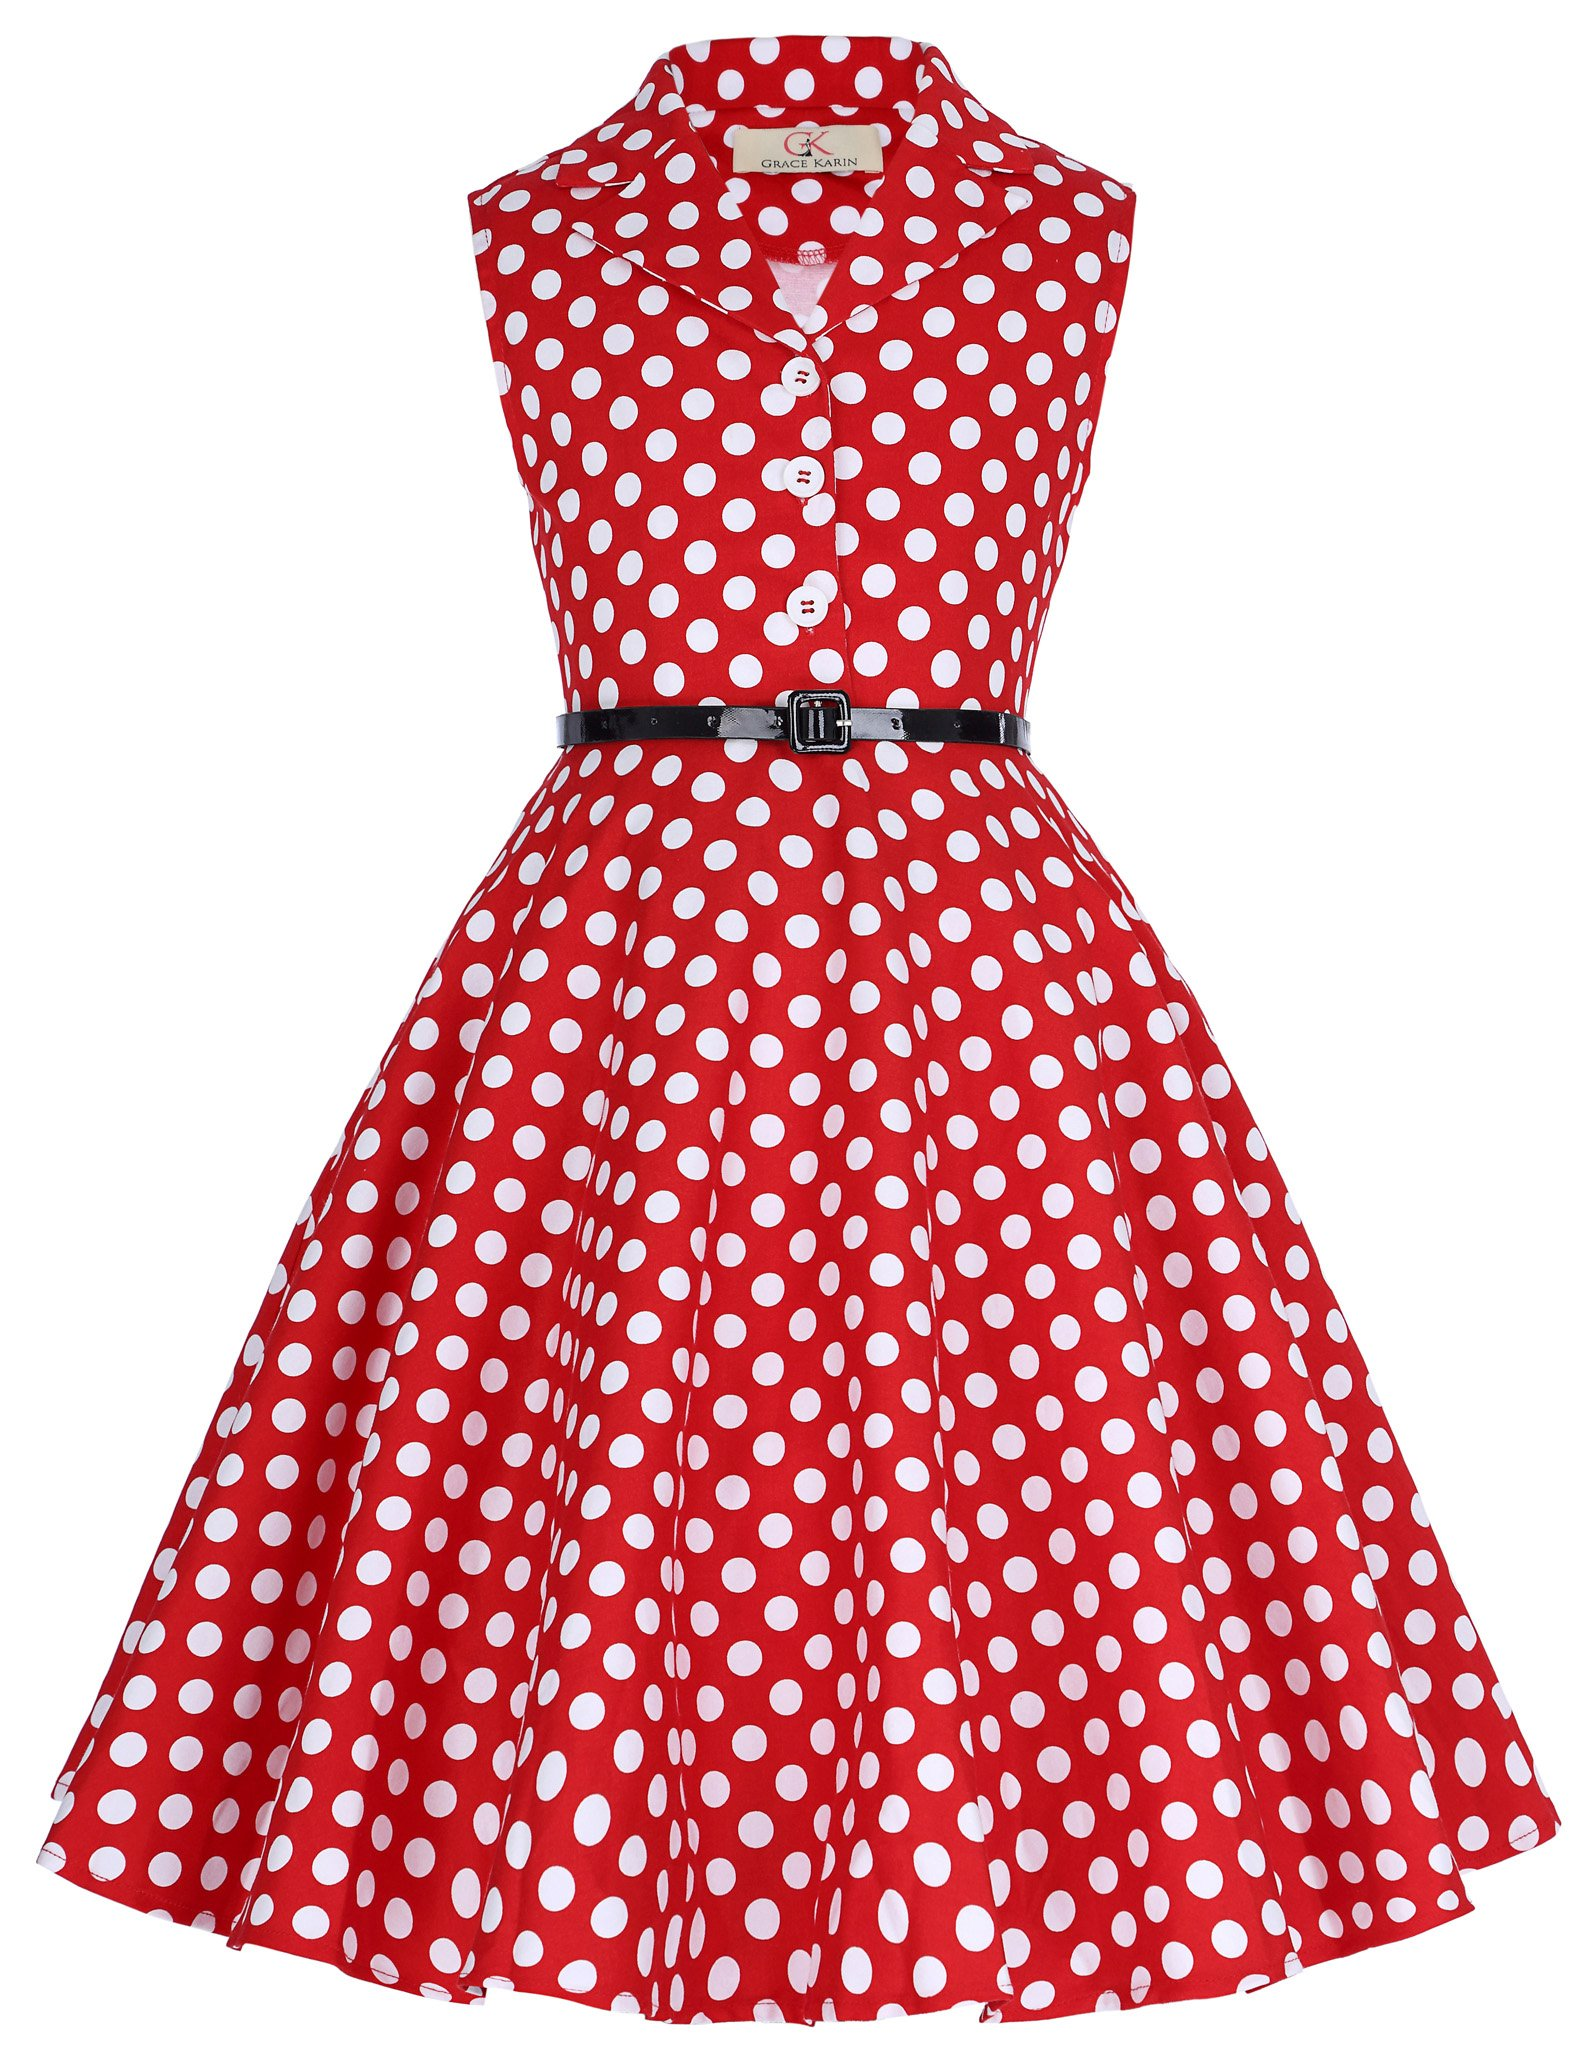 Girls Print Sleeveless Swing Dresses with Belt 10yrs CL9000-3